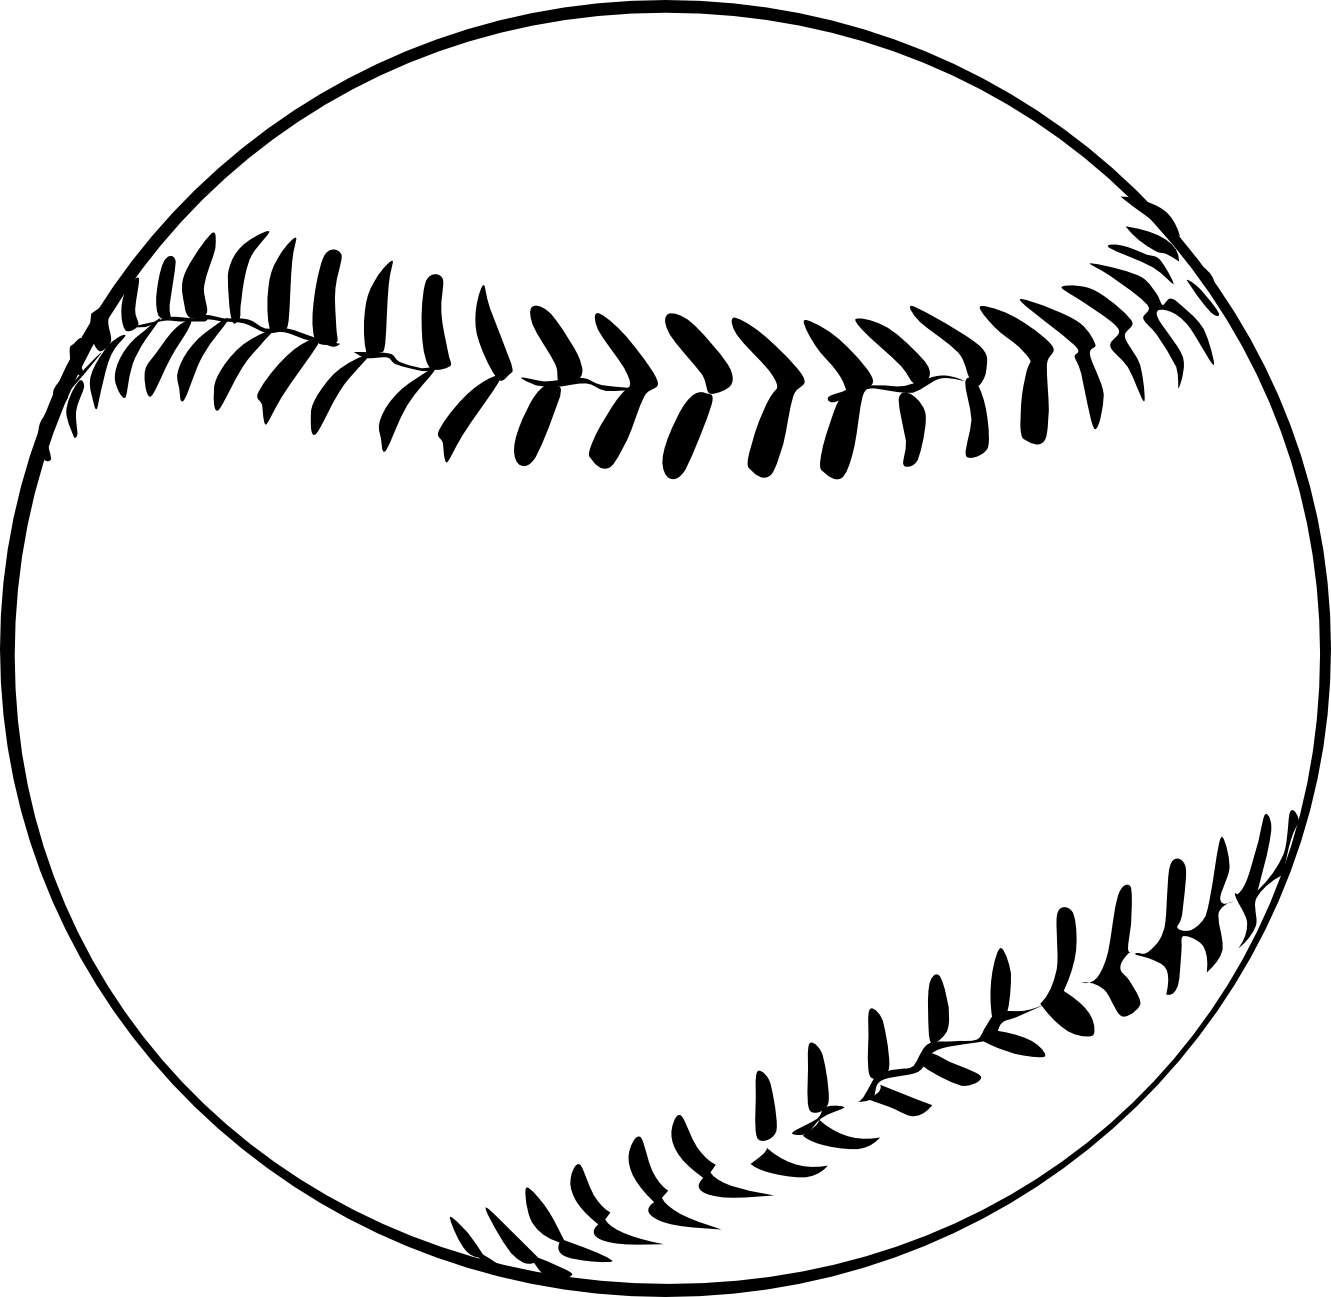 Images For > Baseball Bat Clip Art Black And White